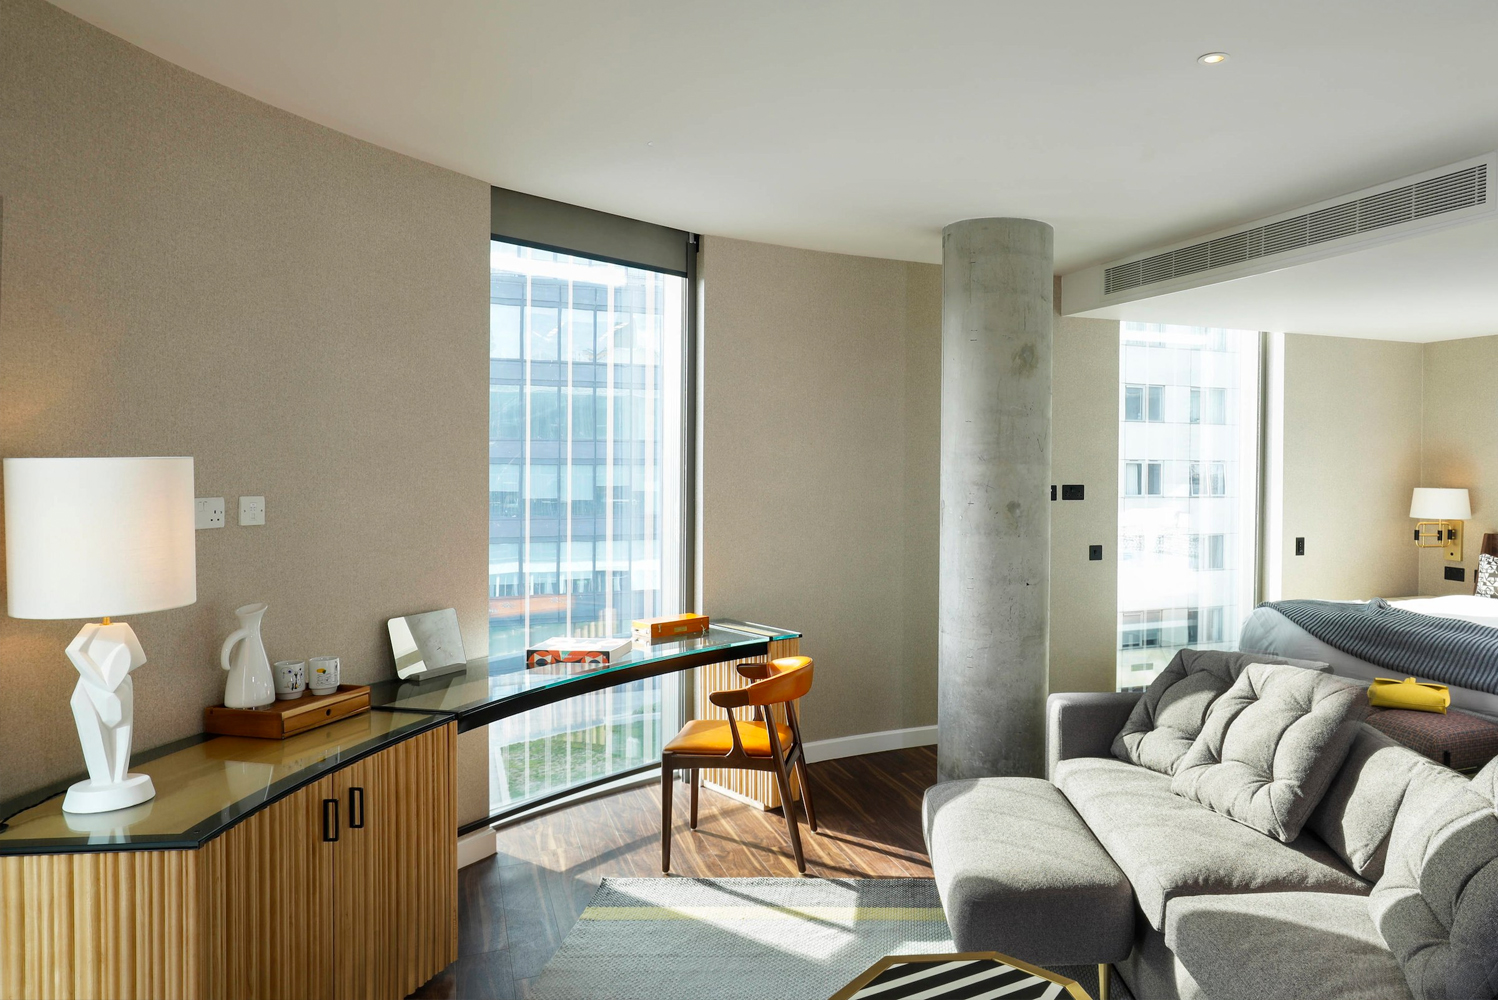 Dayna Lee commissioned British craftsmen to create key features that reside in the hotel and pay homage to its heritage.